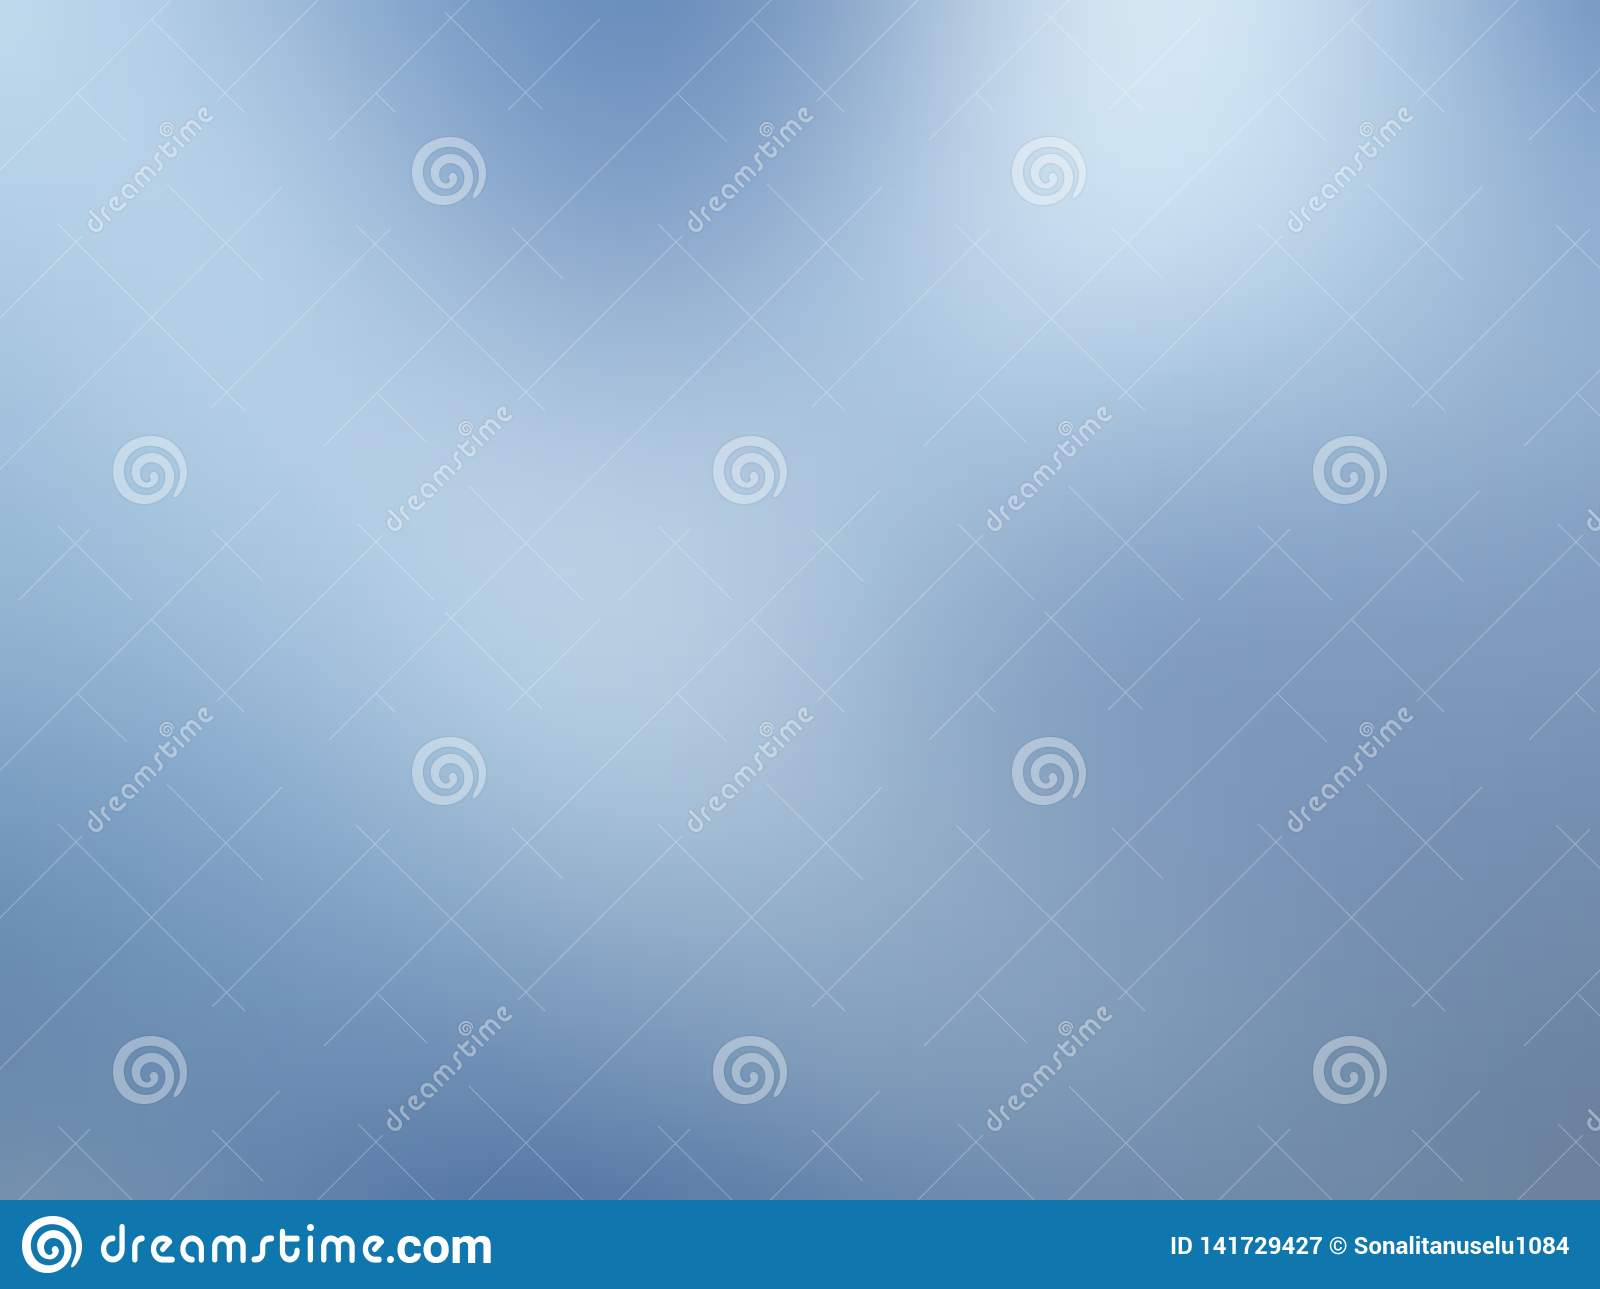 Pastel color abstract blur background wallpaper, vector illustration.